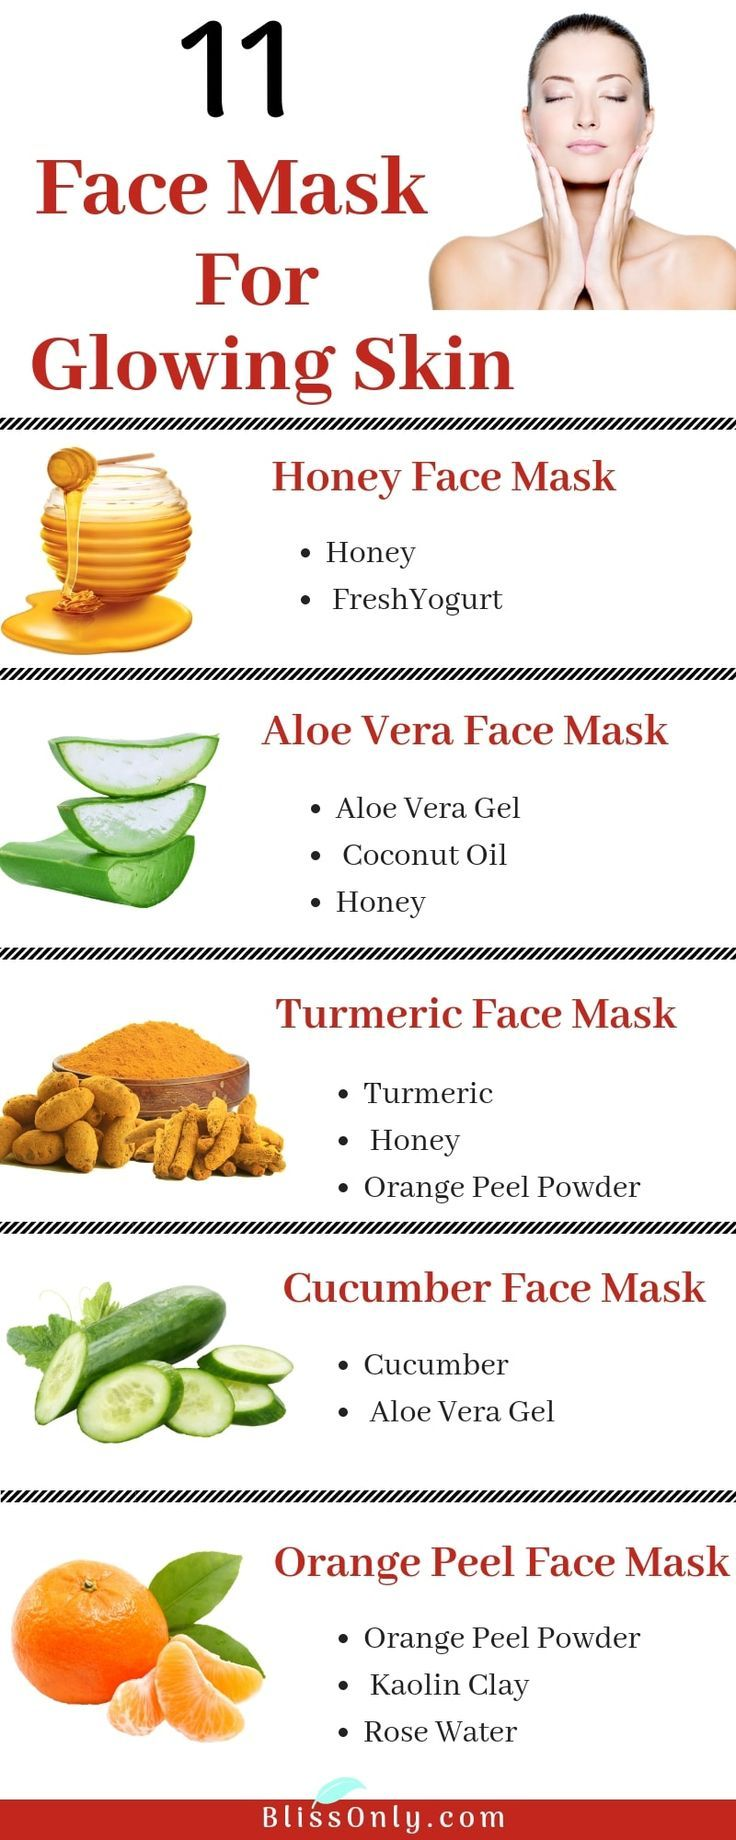 11 Simple Homemade Face Masks For Glowing Skin Cucumber